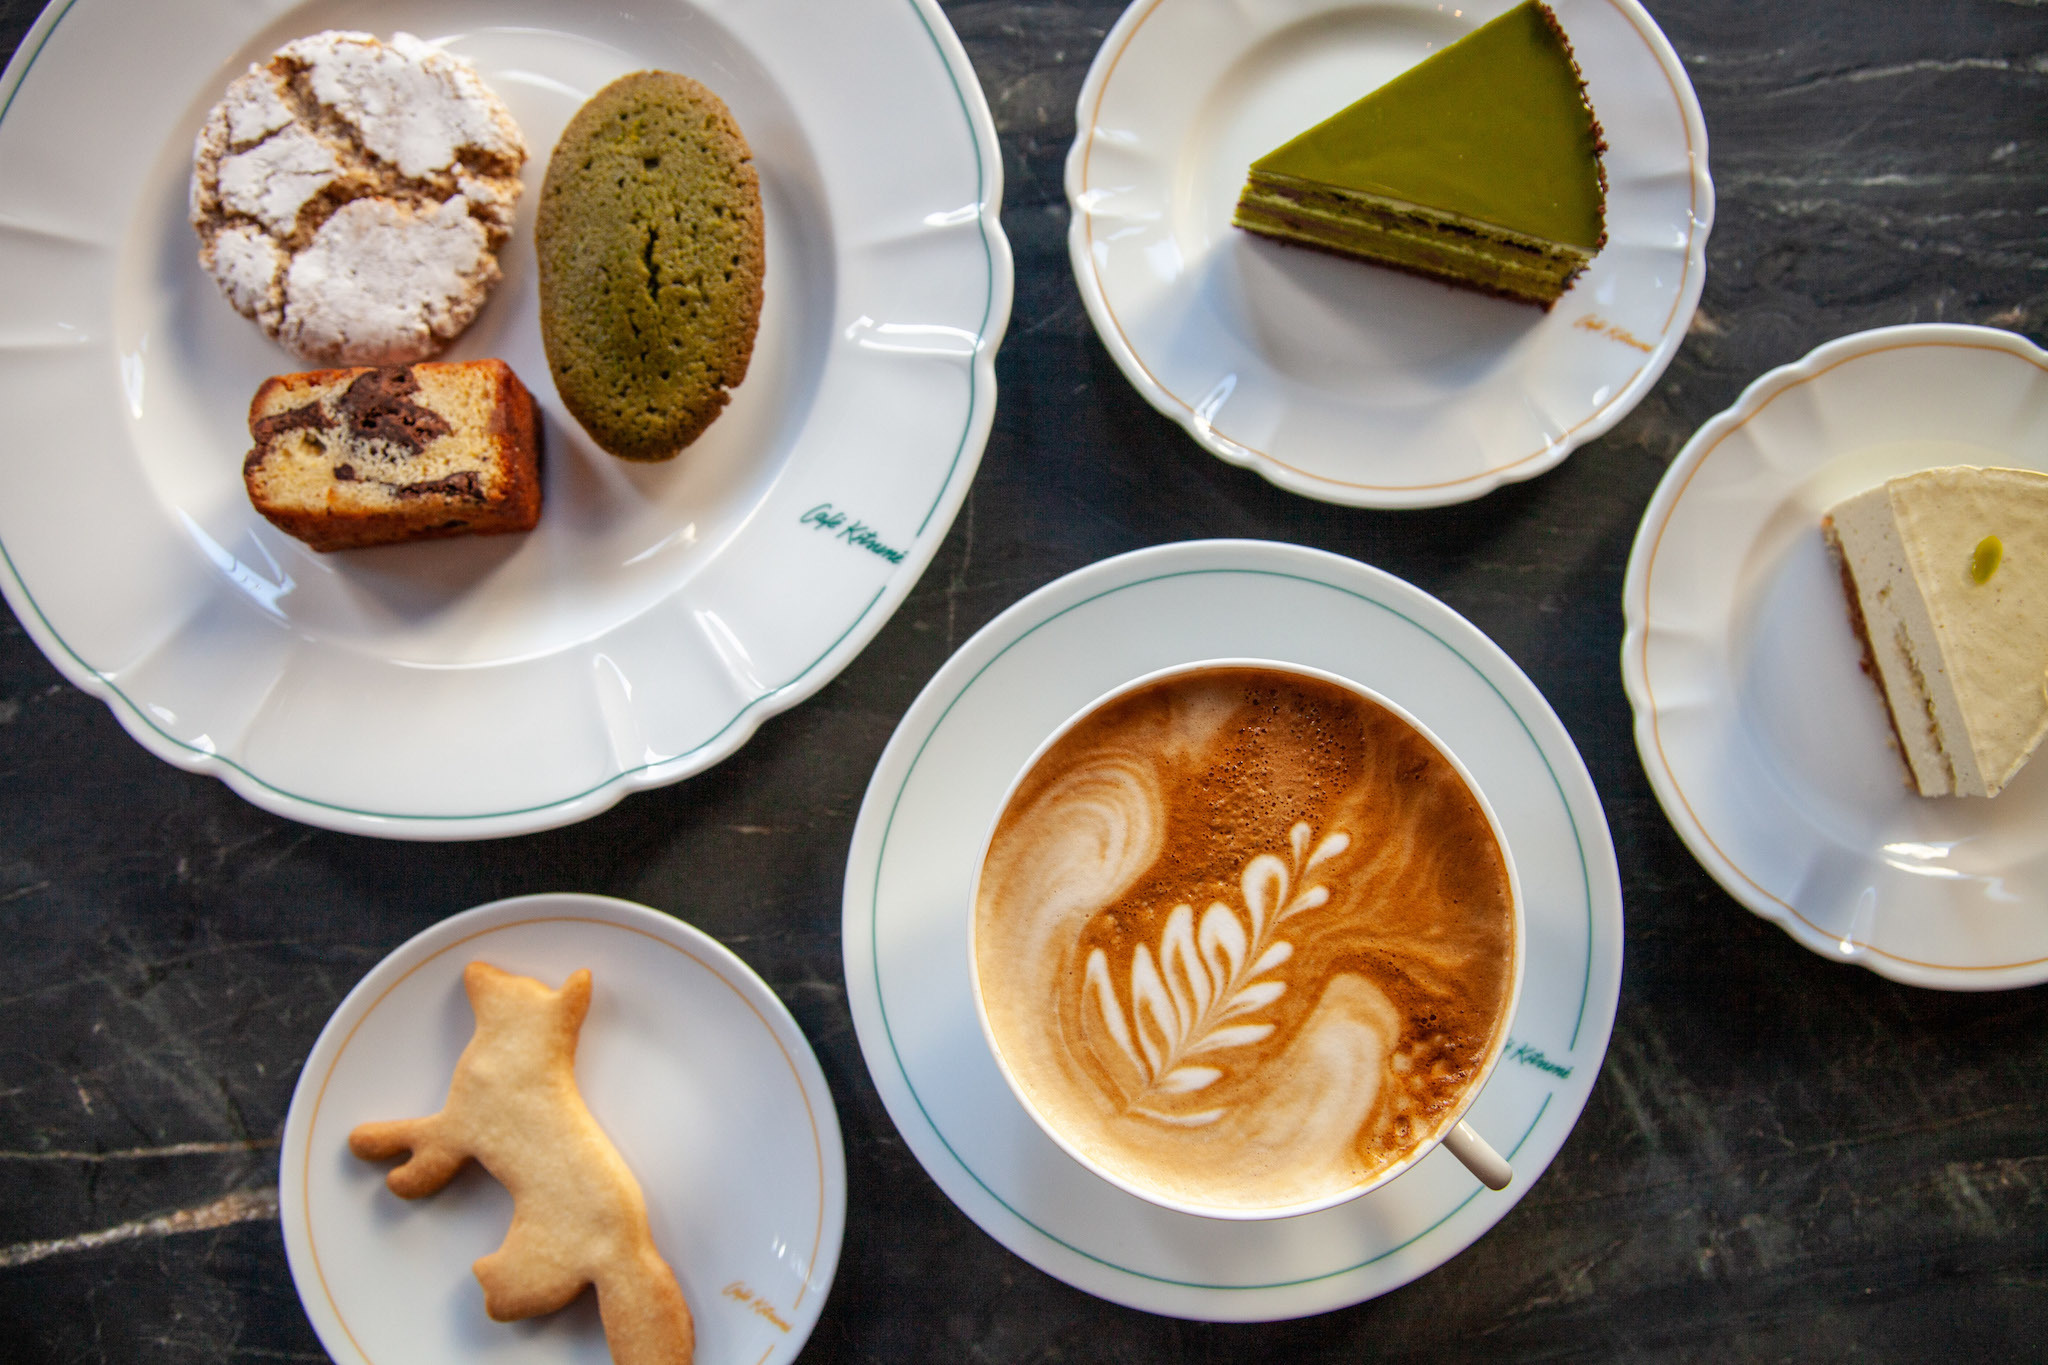 Café Kitsuné New York opens with cakes from acclaimed bakery, Burrow